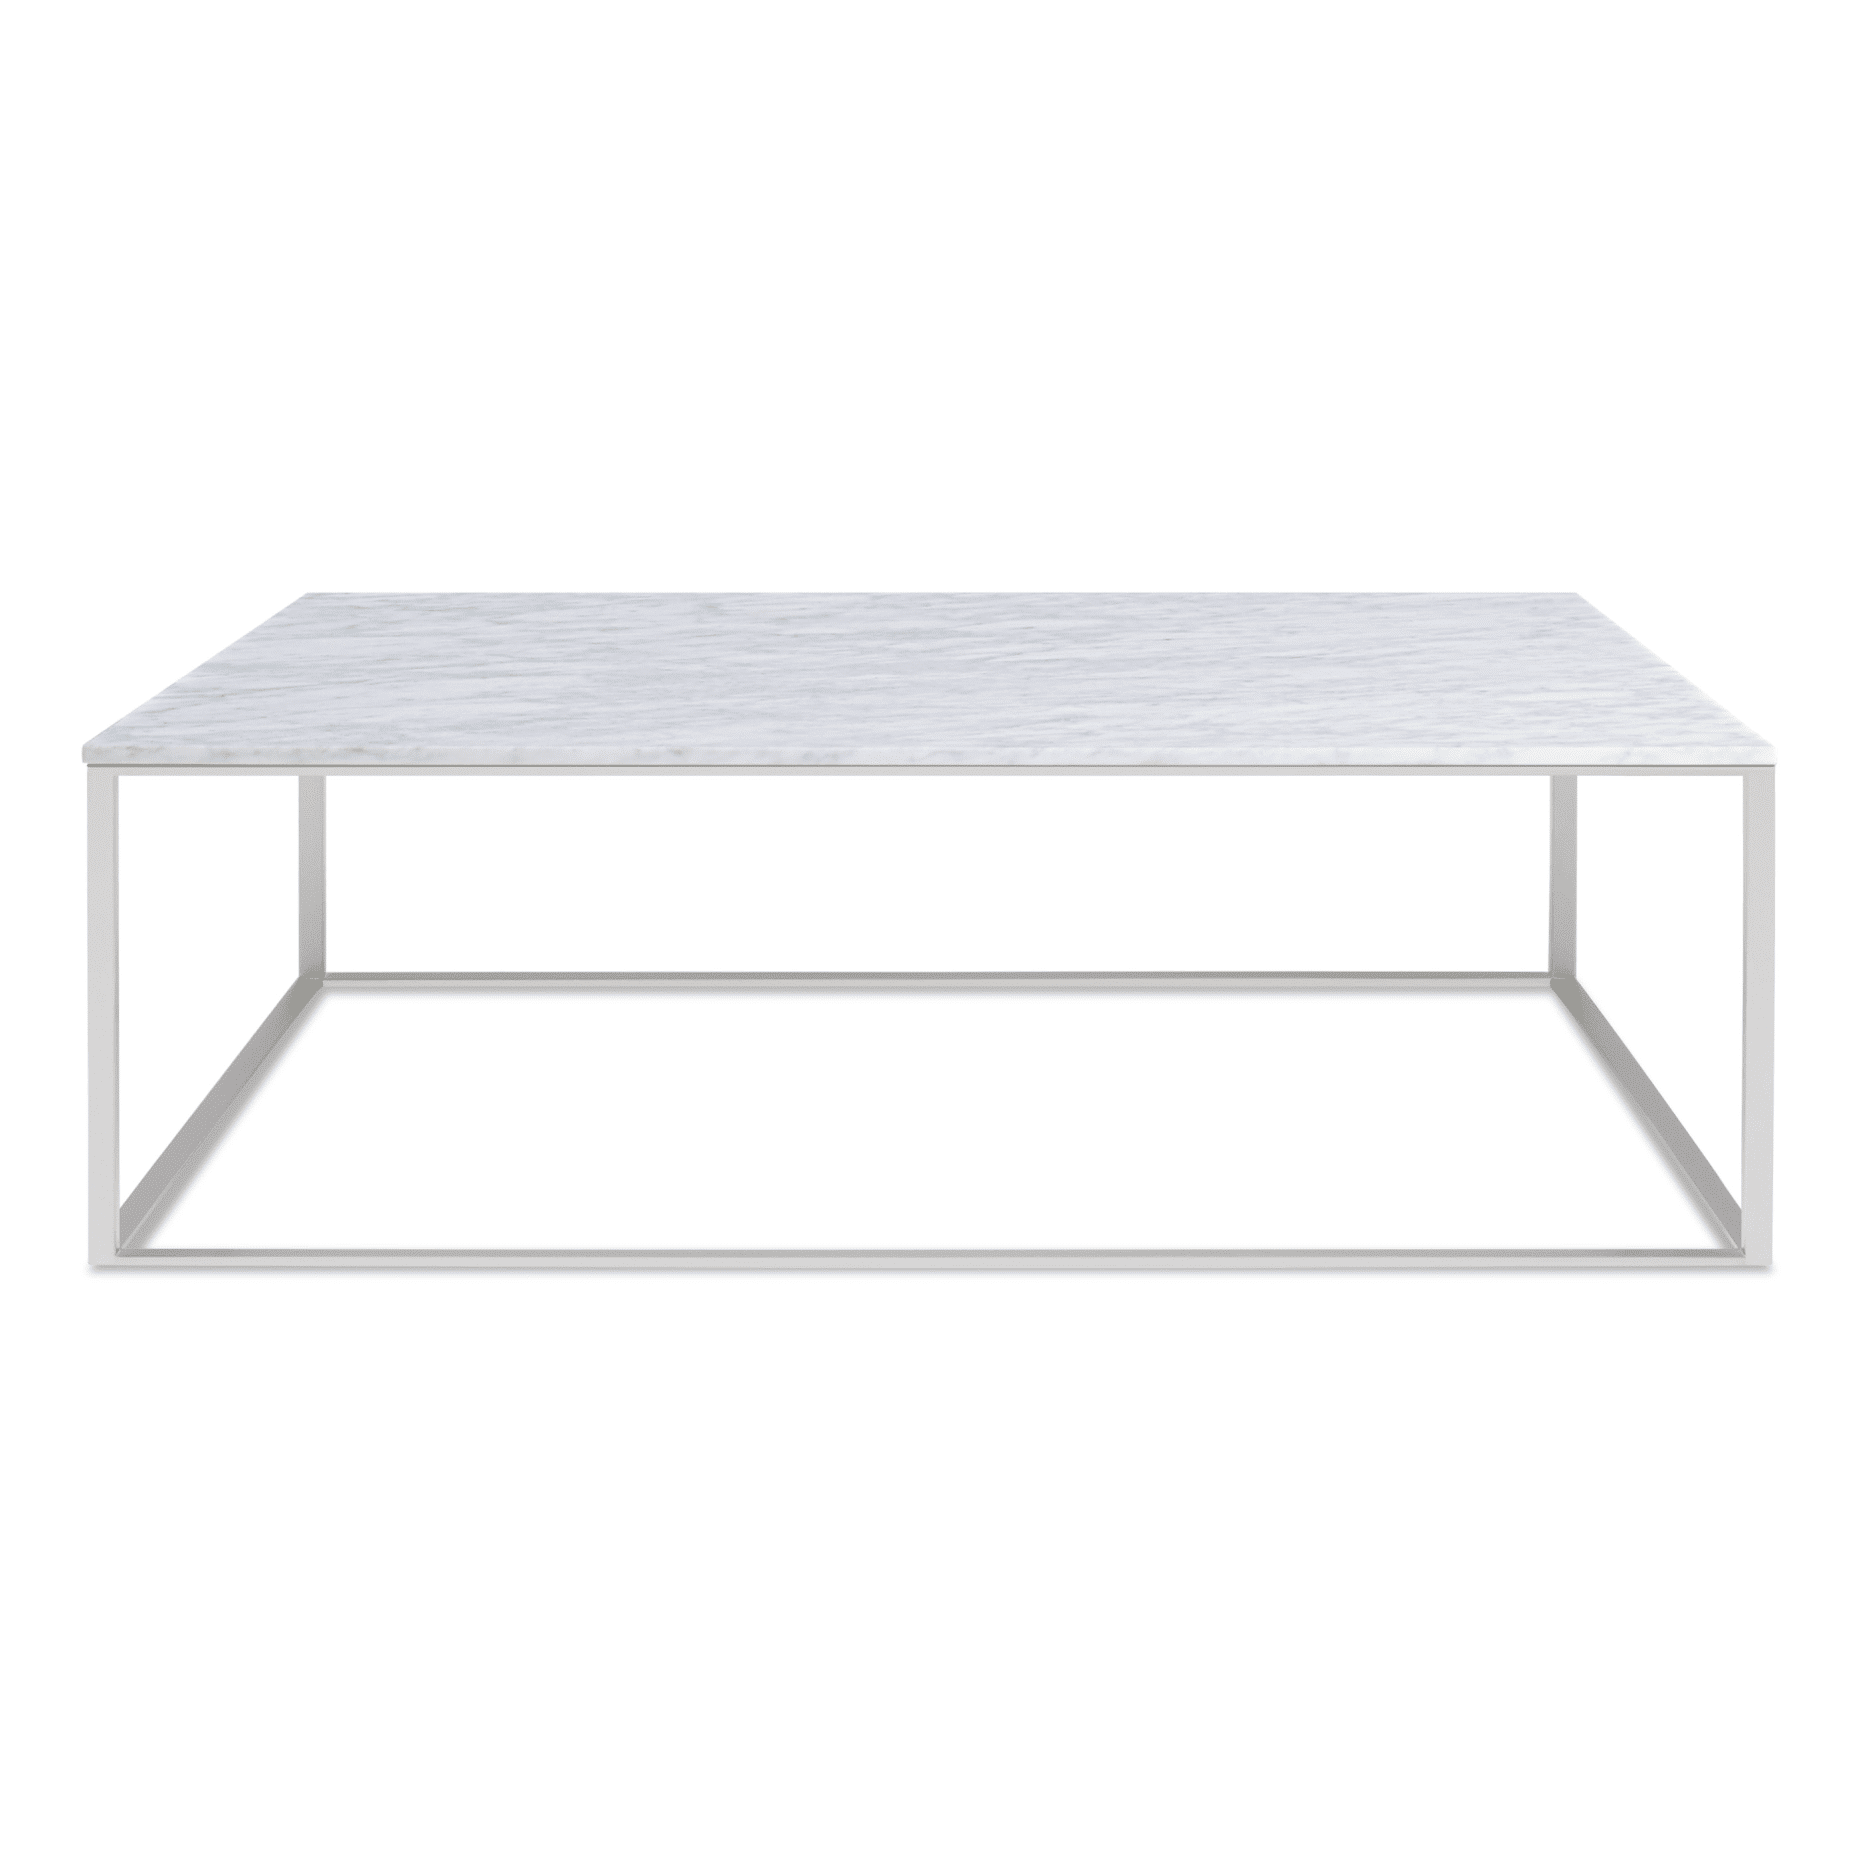 mn1 sqcfss mb minimalista square coffee table stainless steel marble